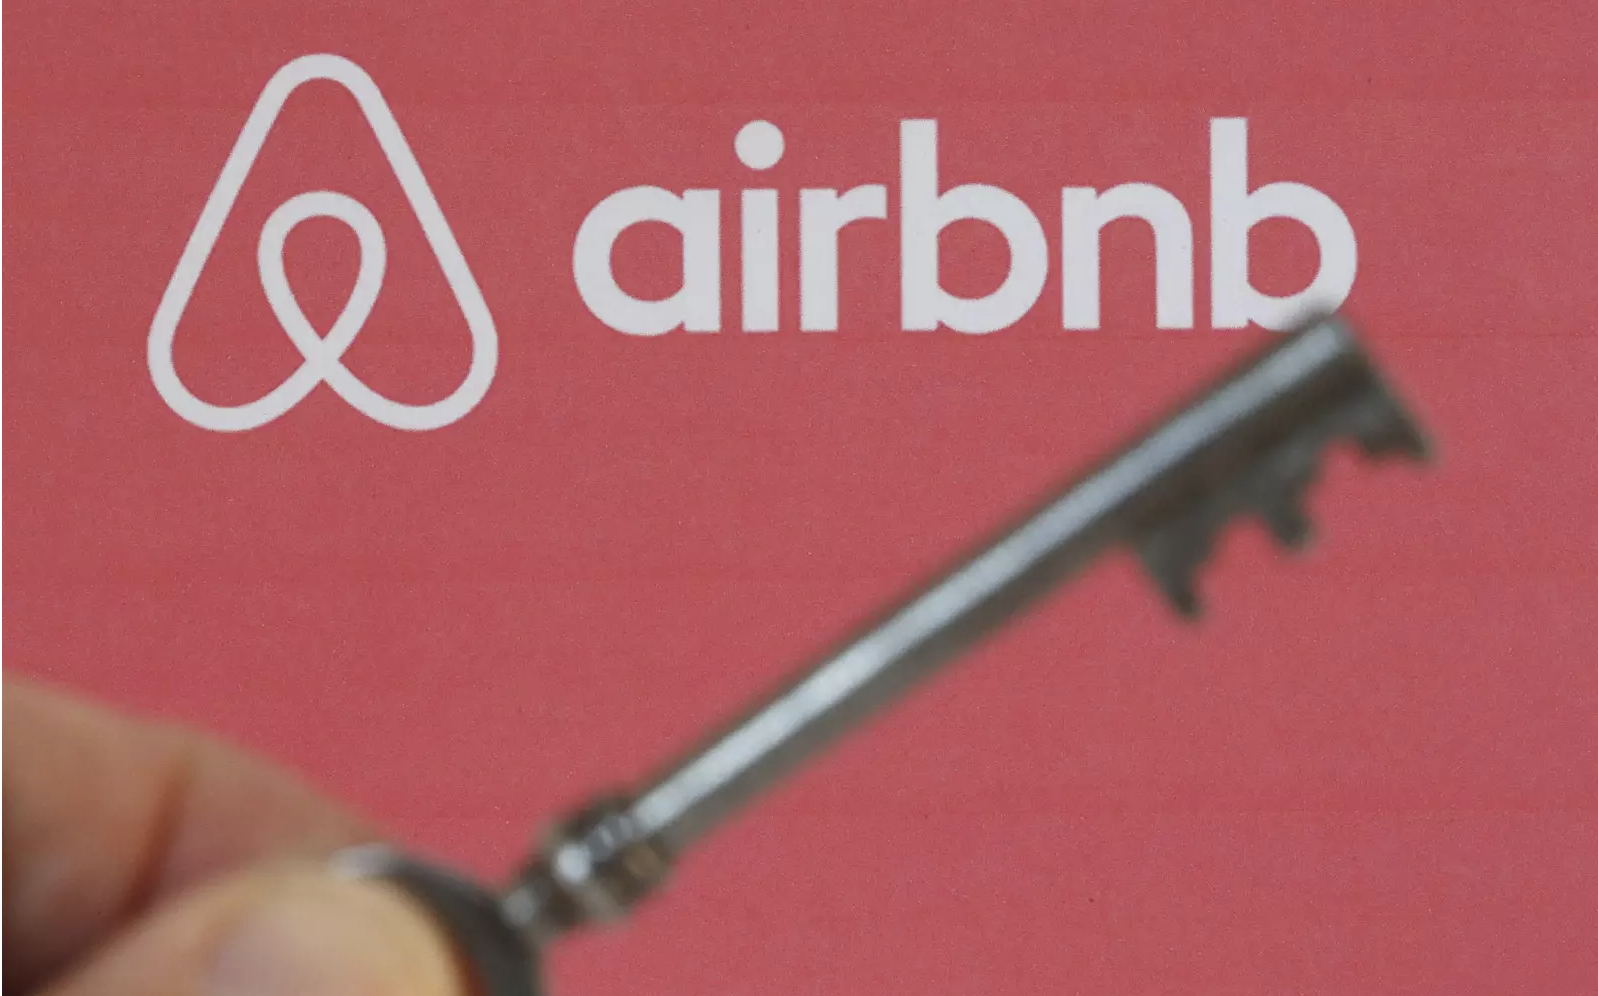 More than 1 in 10 Airbnb guests have found hidden cameras